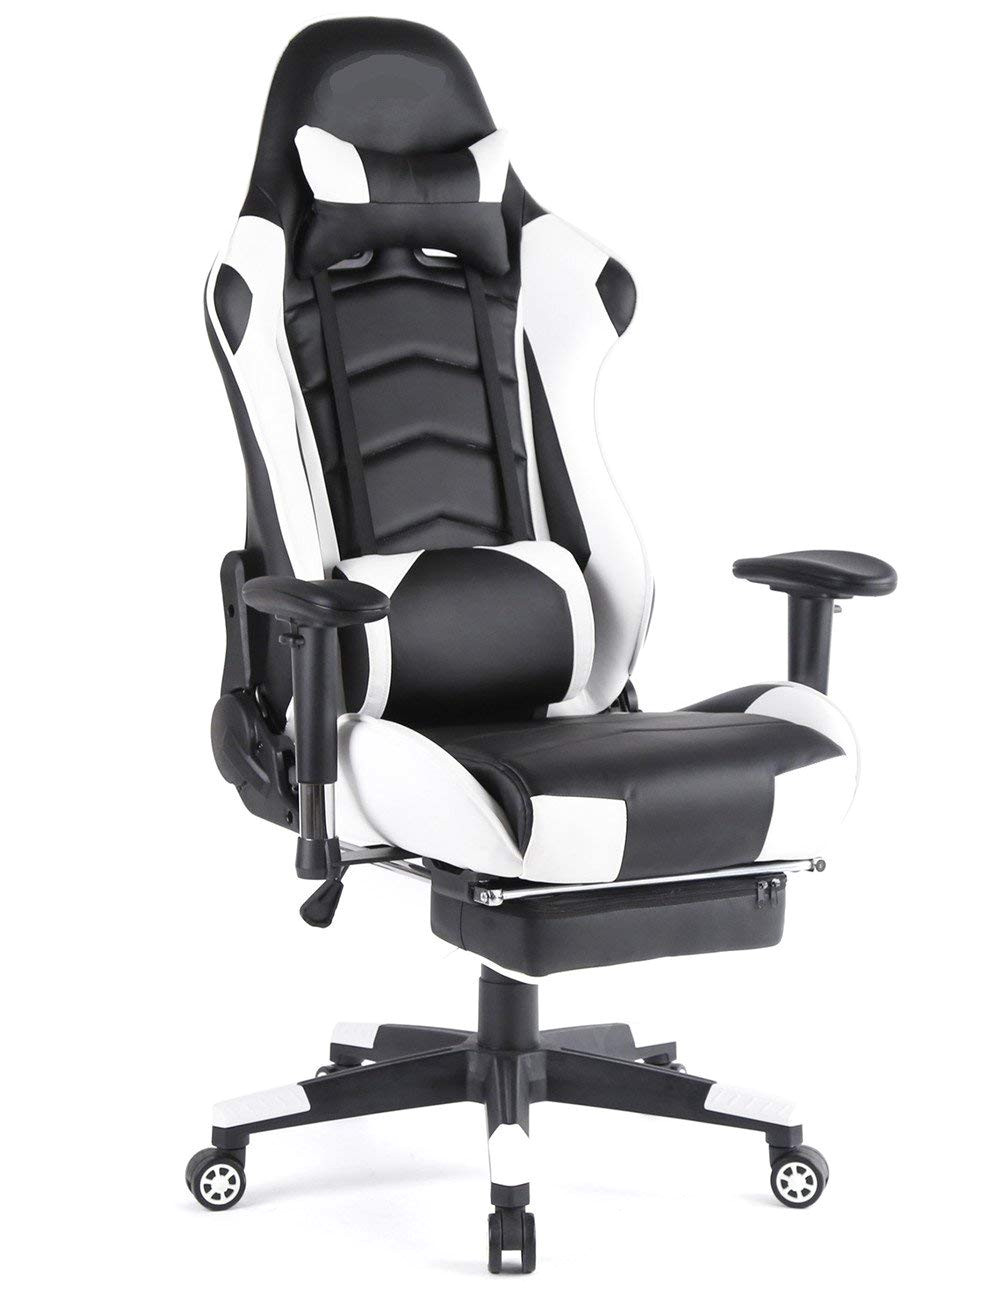 amazon com top gamer ergonomic gaming chair high back swivel computer office chair with footrest adjusting headrest and lumbar support racing chair